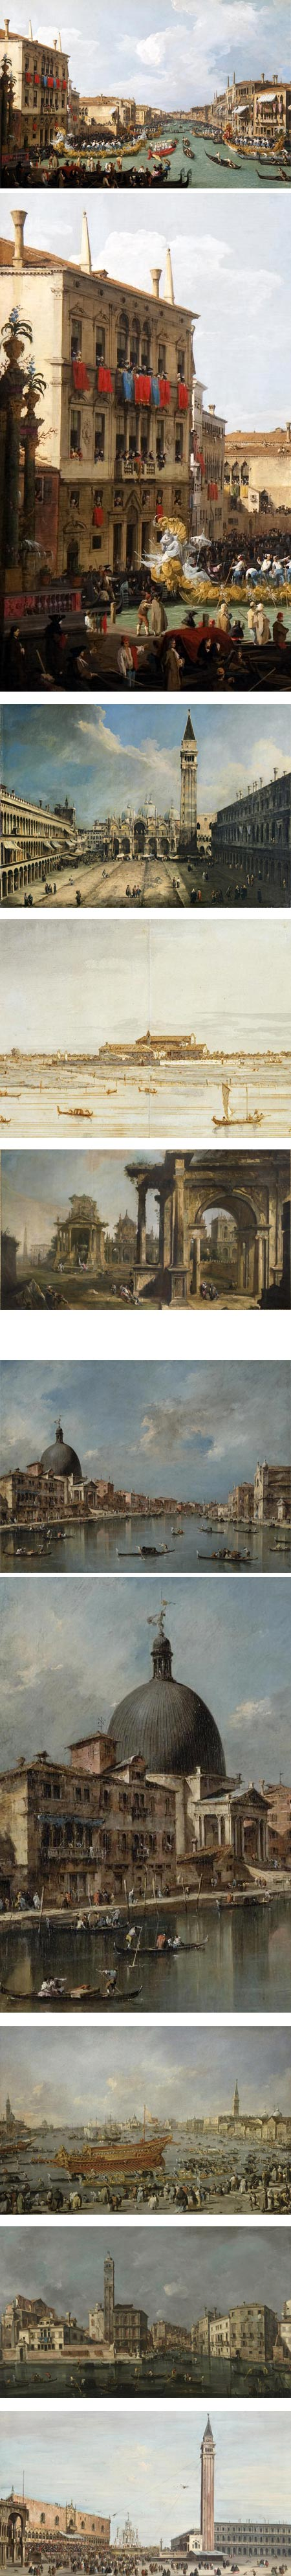 Canaletto ˜ Guardi: The two masters of Venice